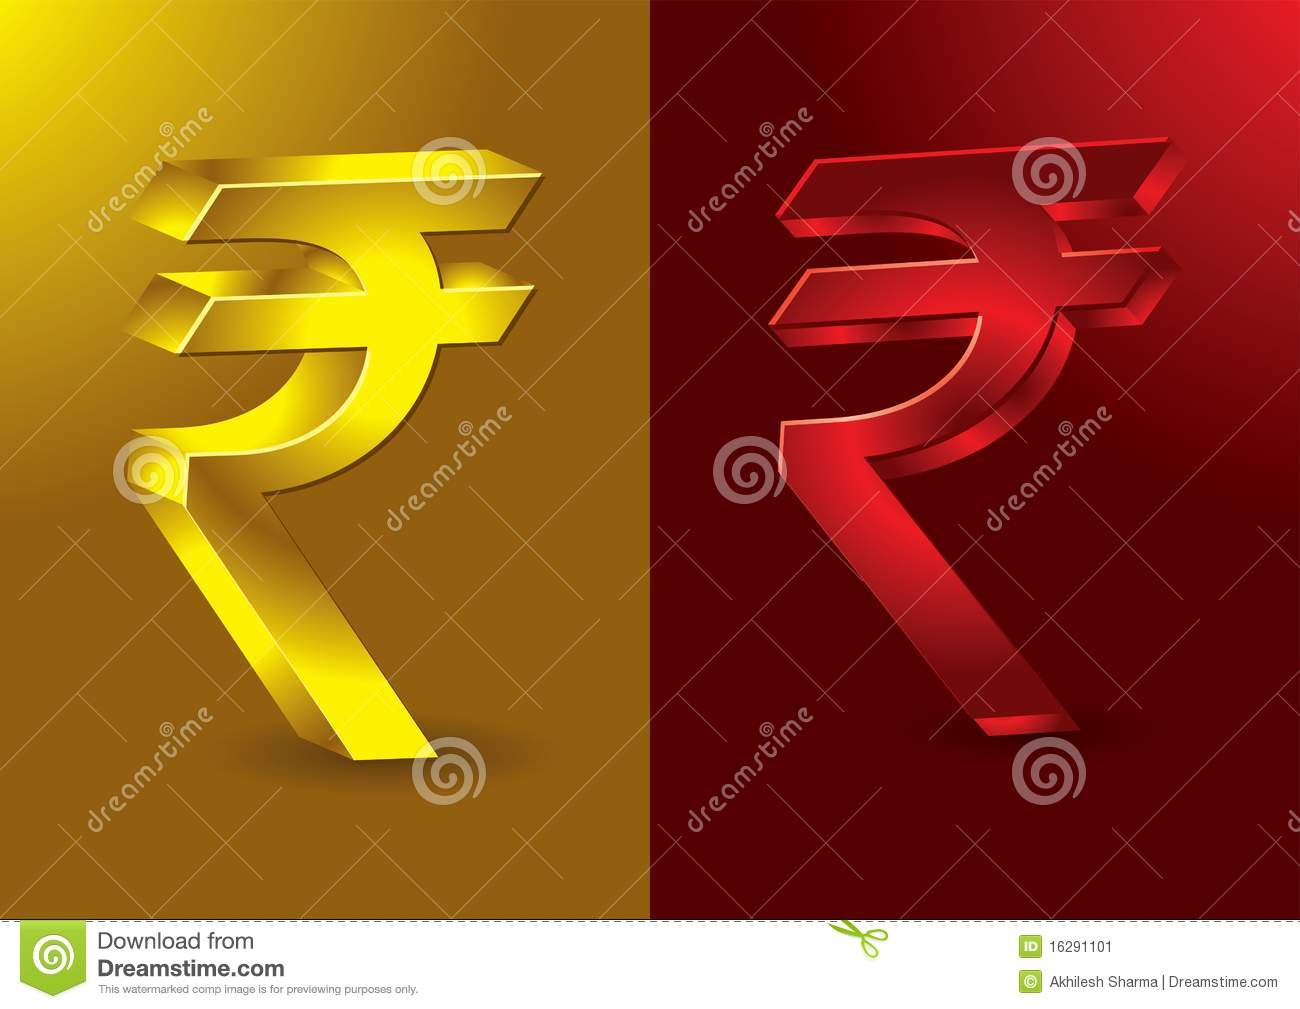 Newly Formed Indian Rupees Symbol Stock Vector Illustration Of